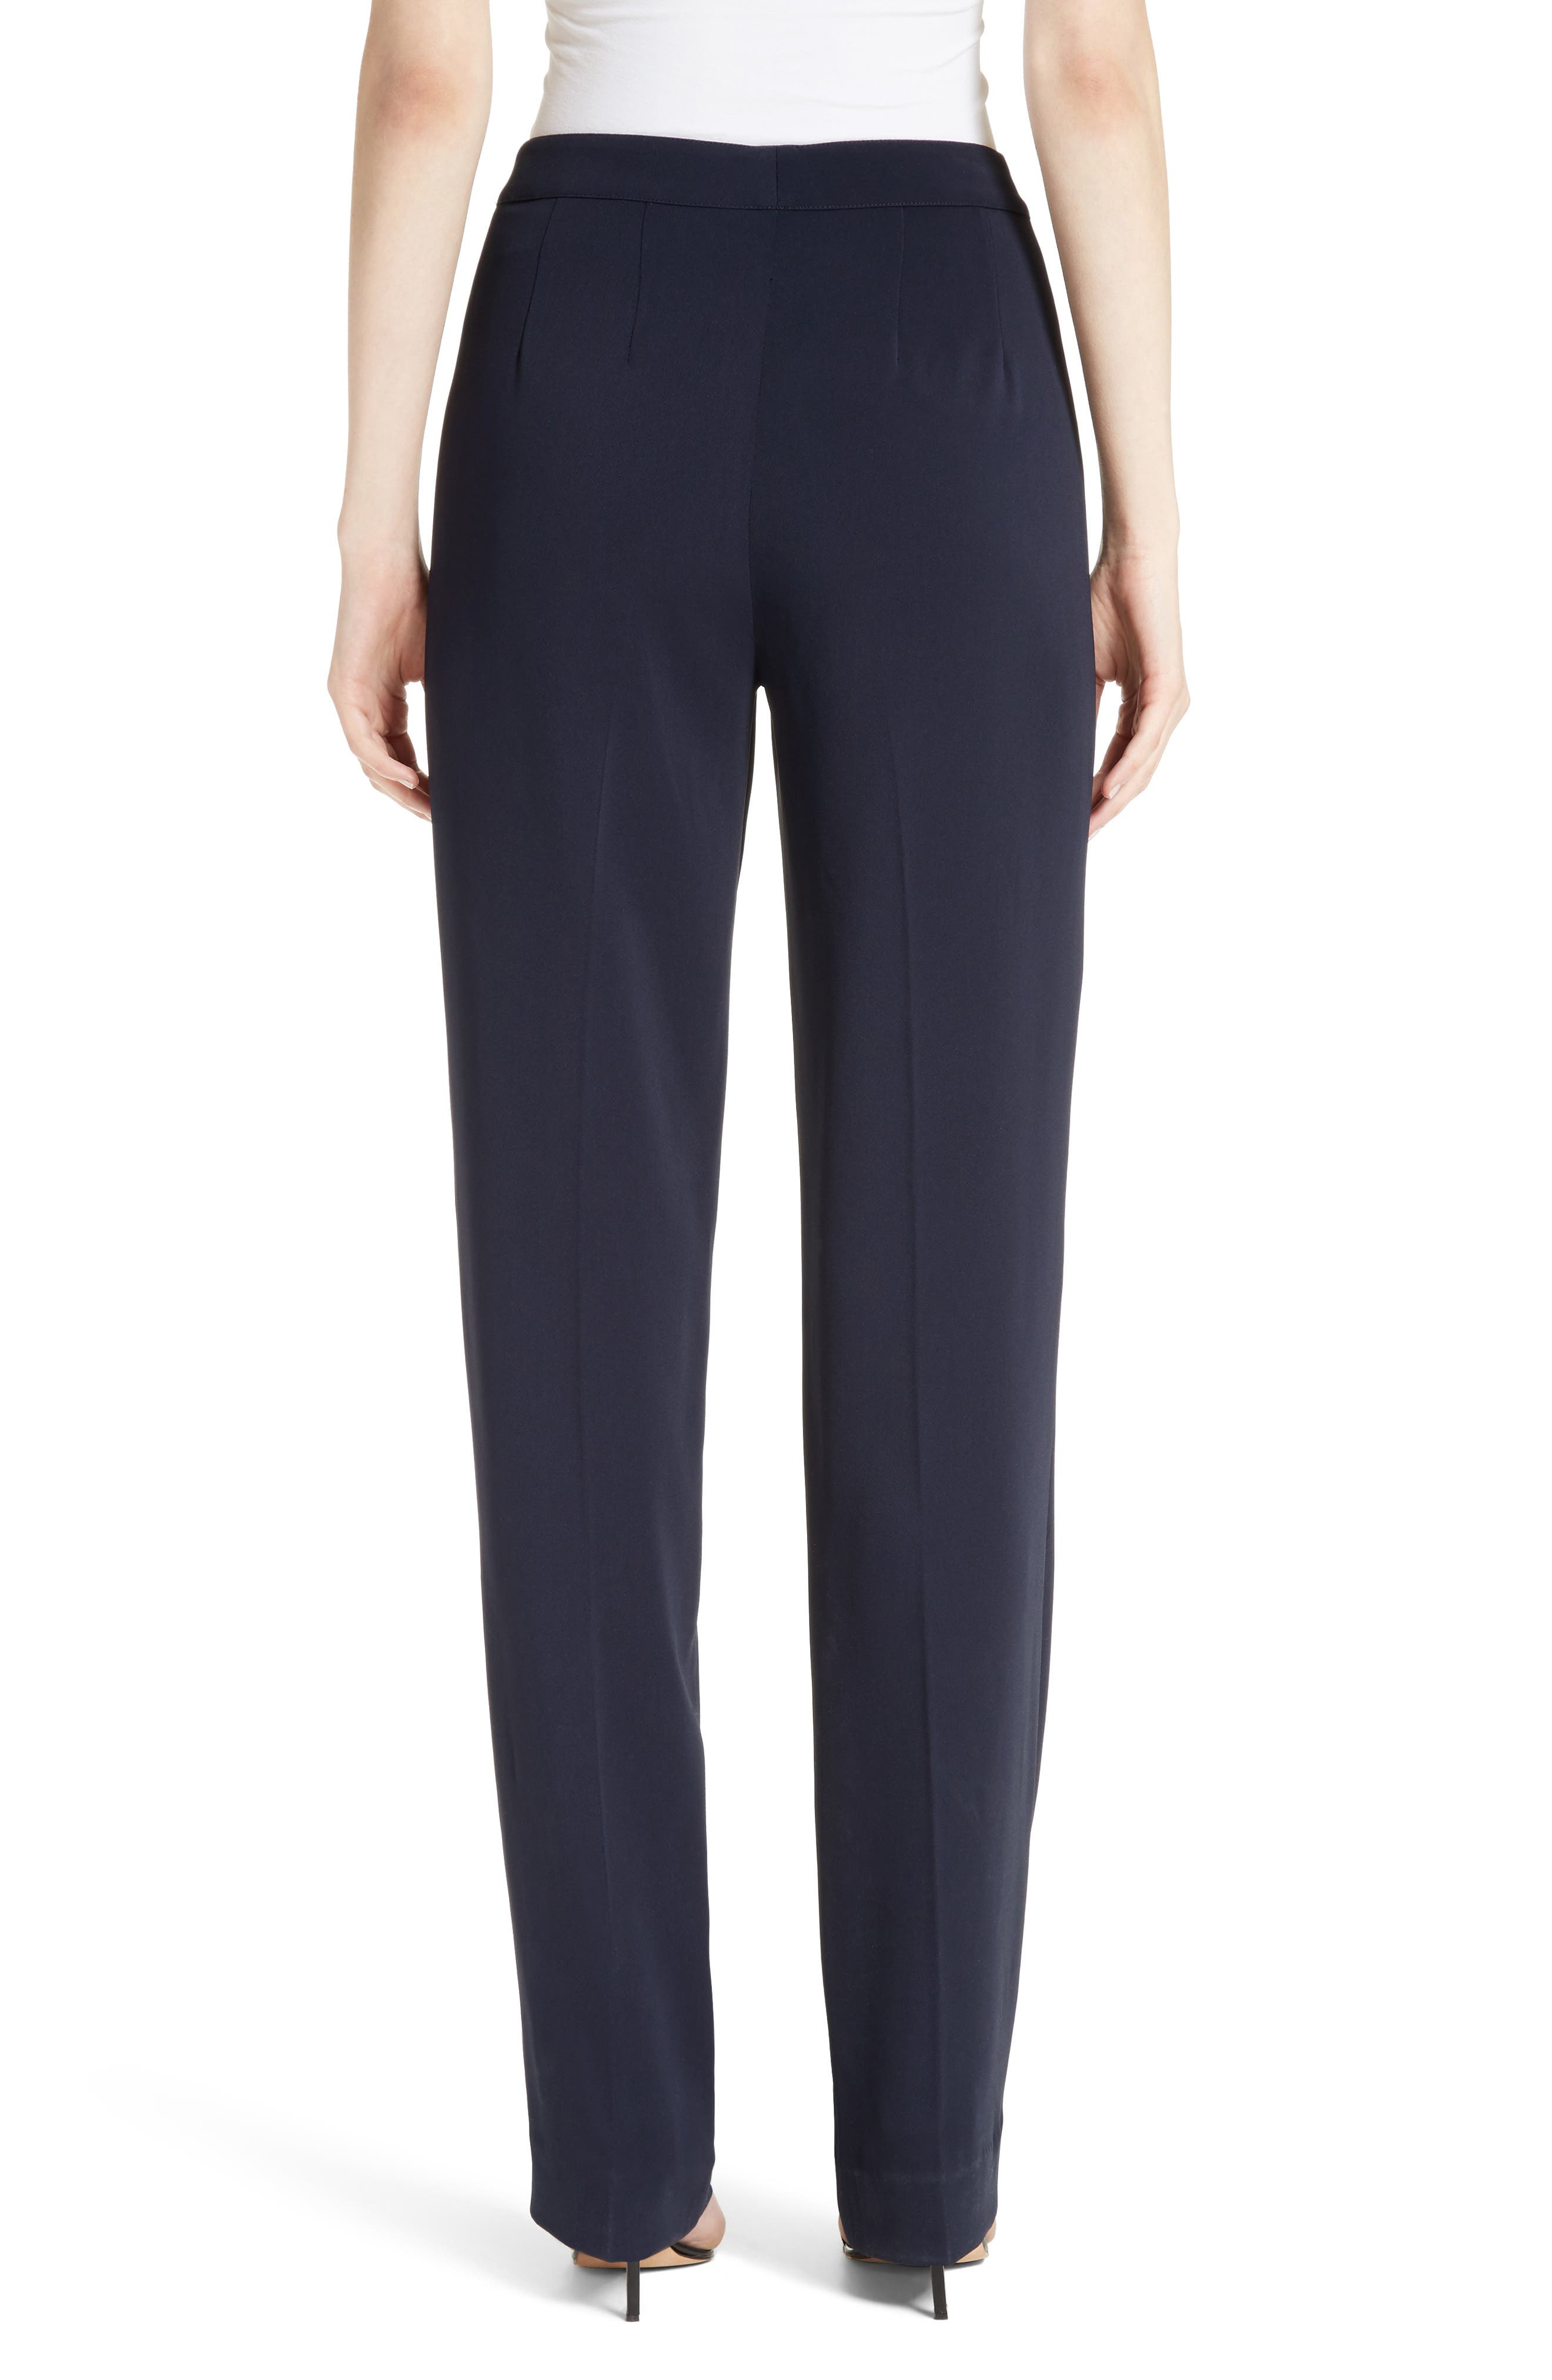 Diana Classic Cady Stretch Pants,                             Alternate thumbnail 2, color,                             NAVY